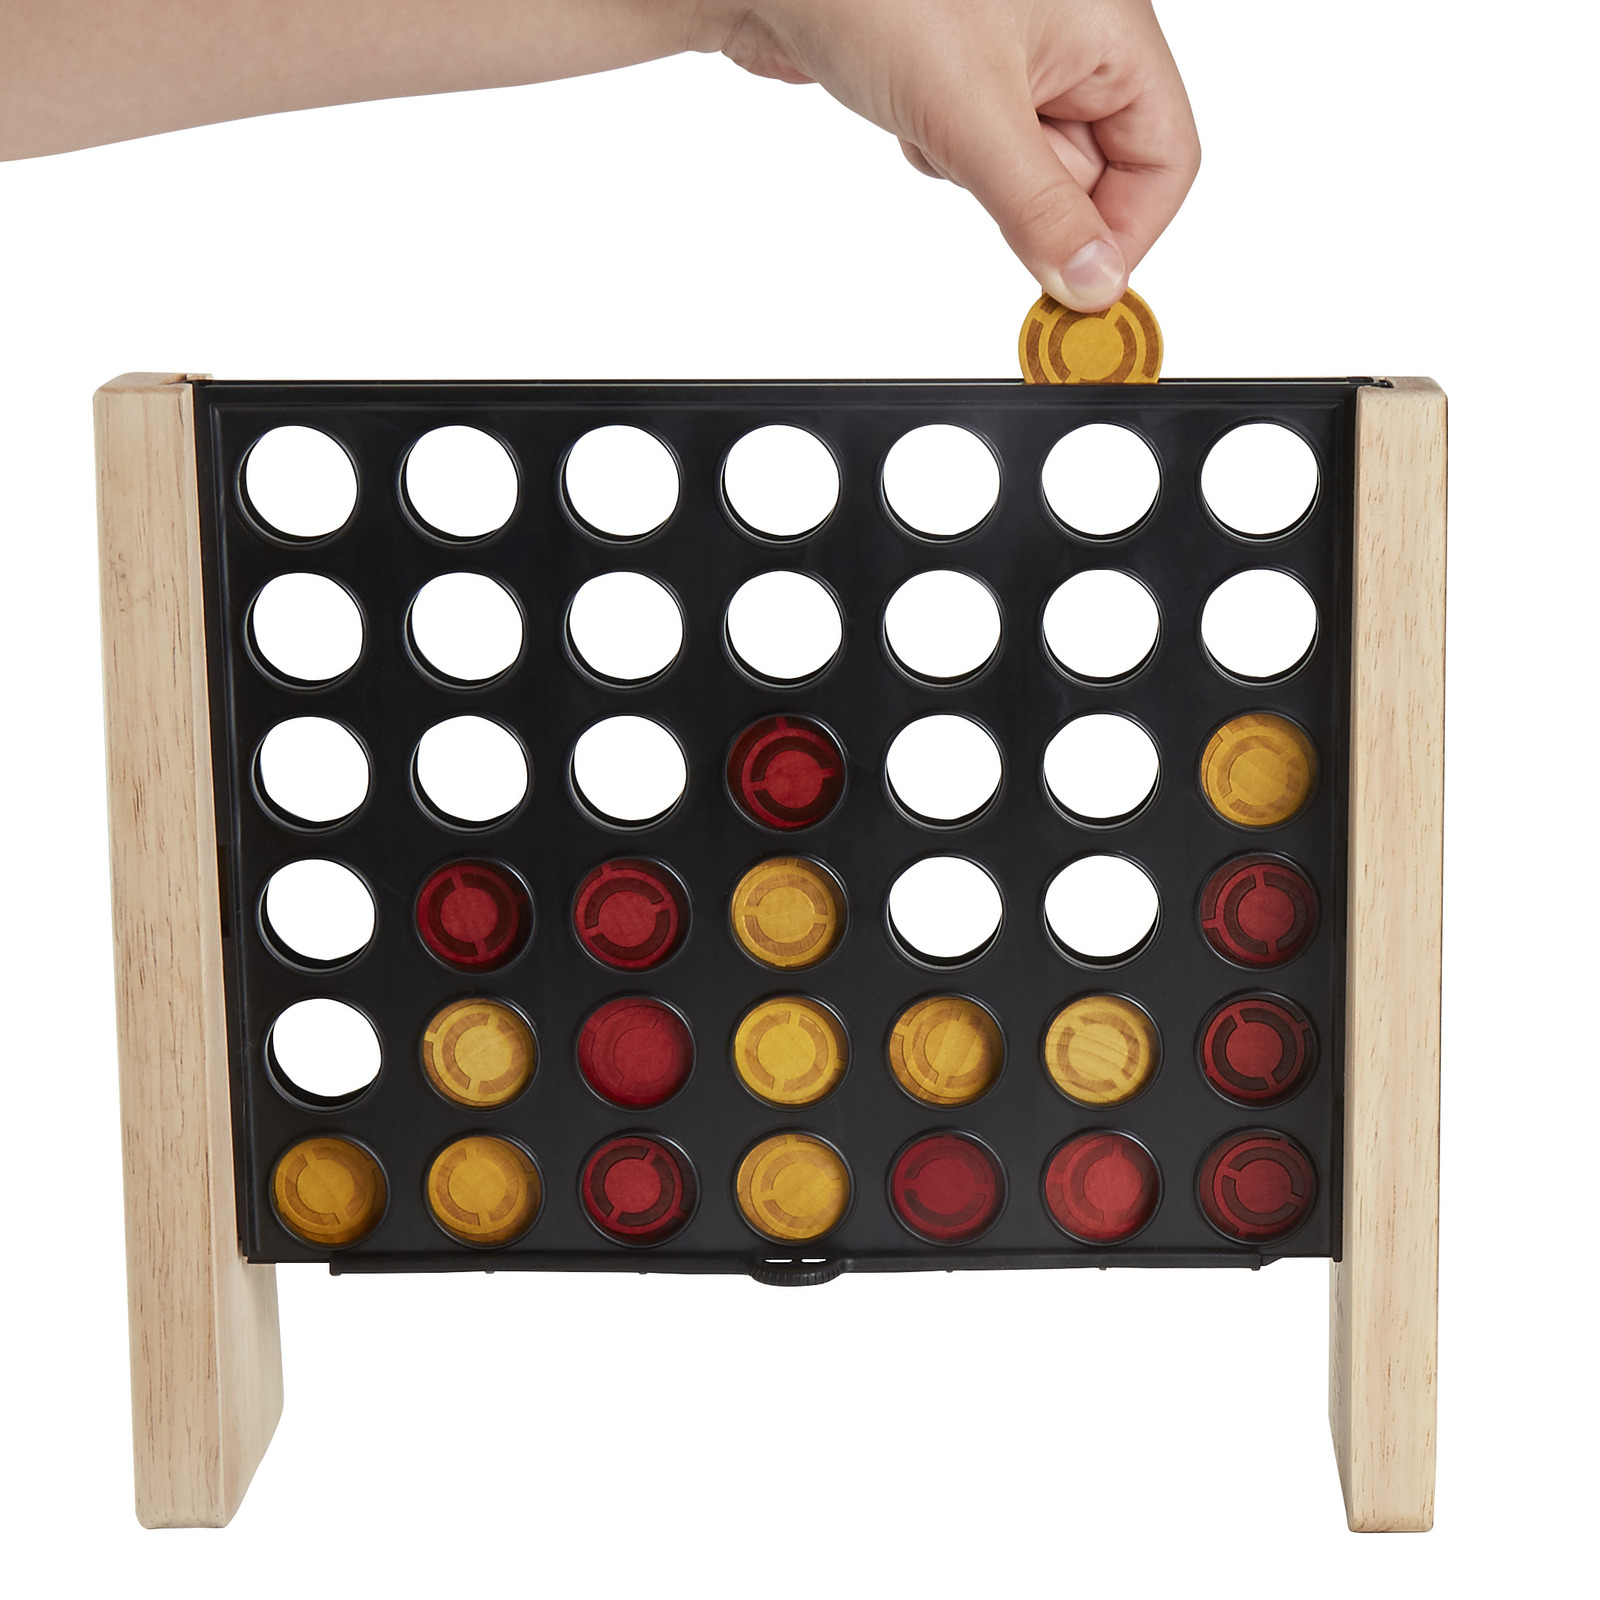 Connect 4 - Rustic Series Edition image